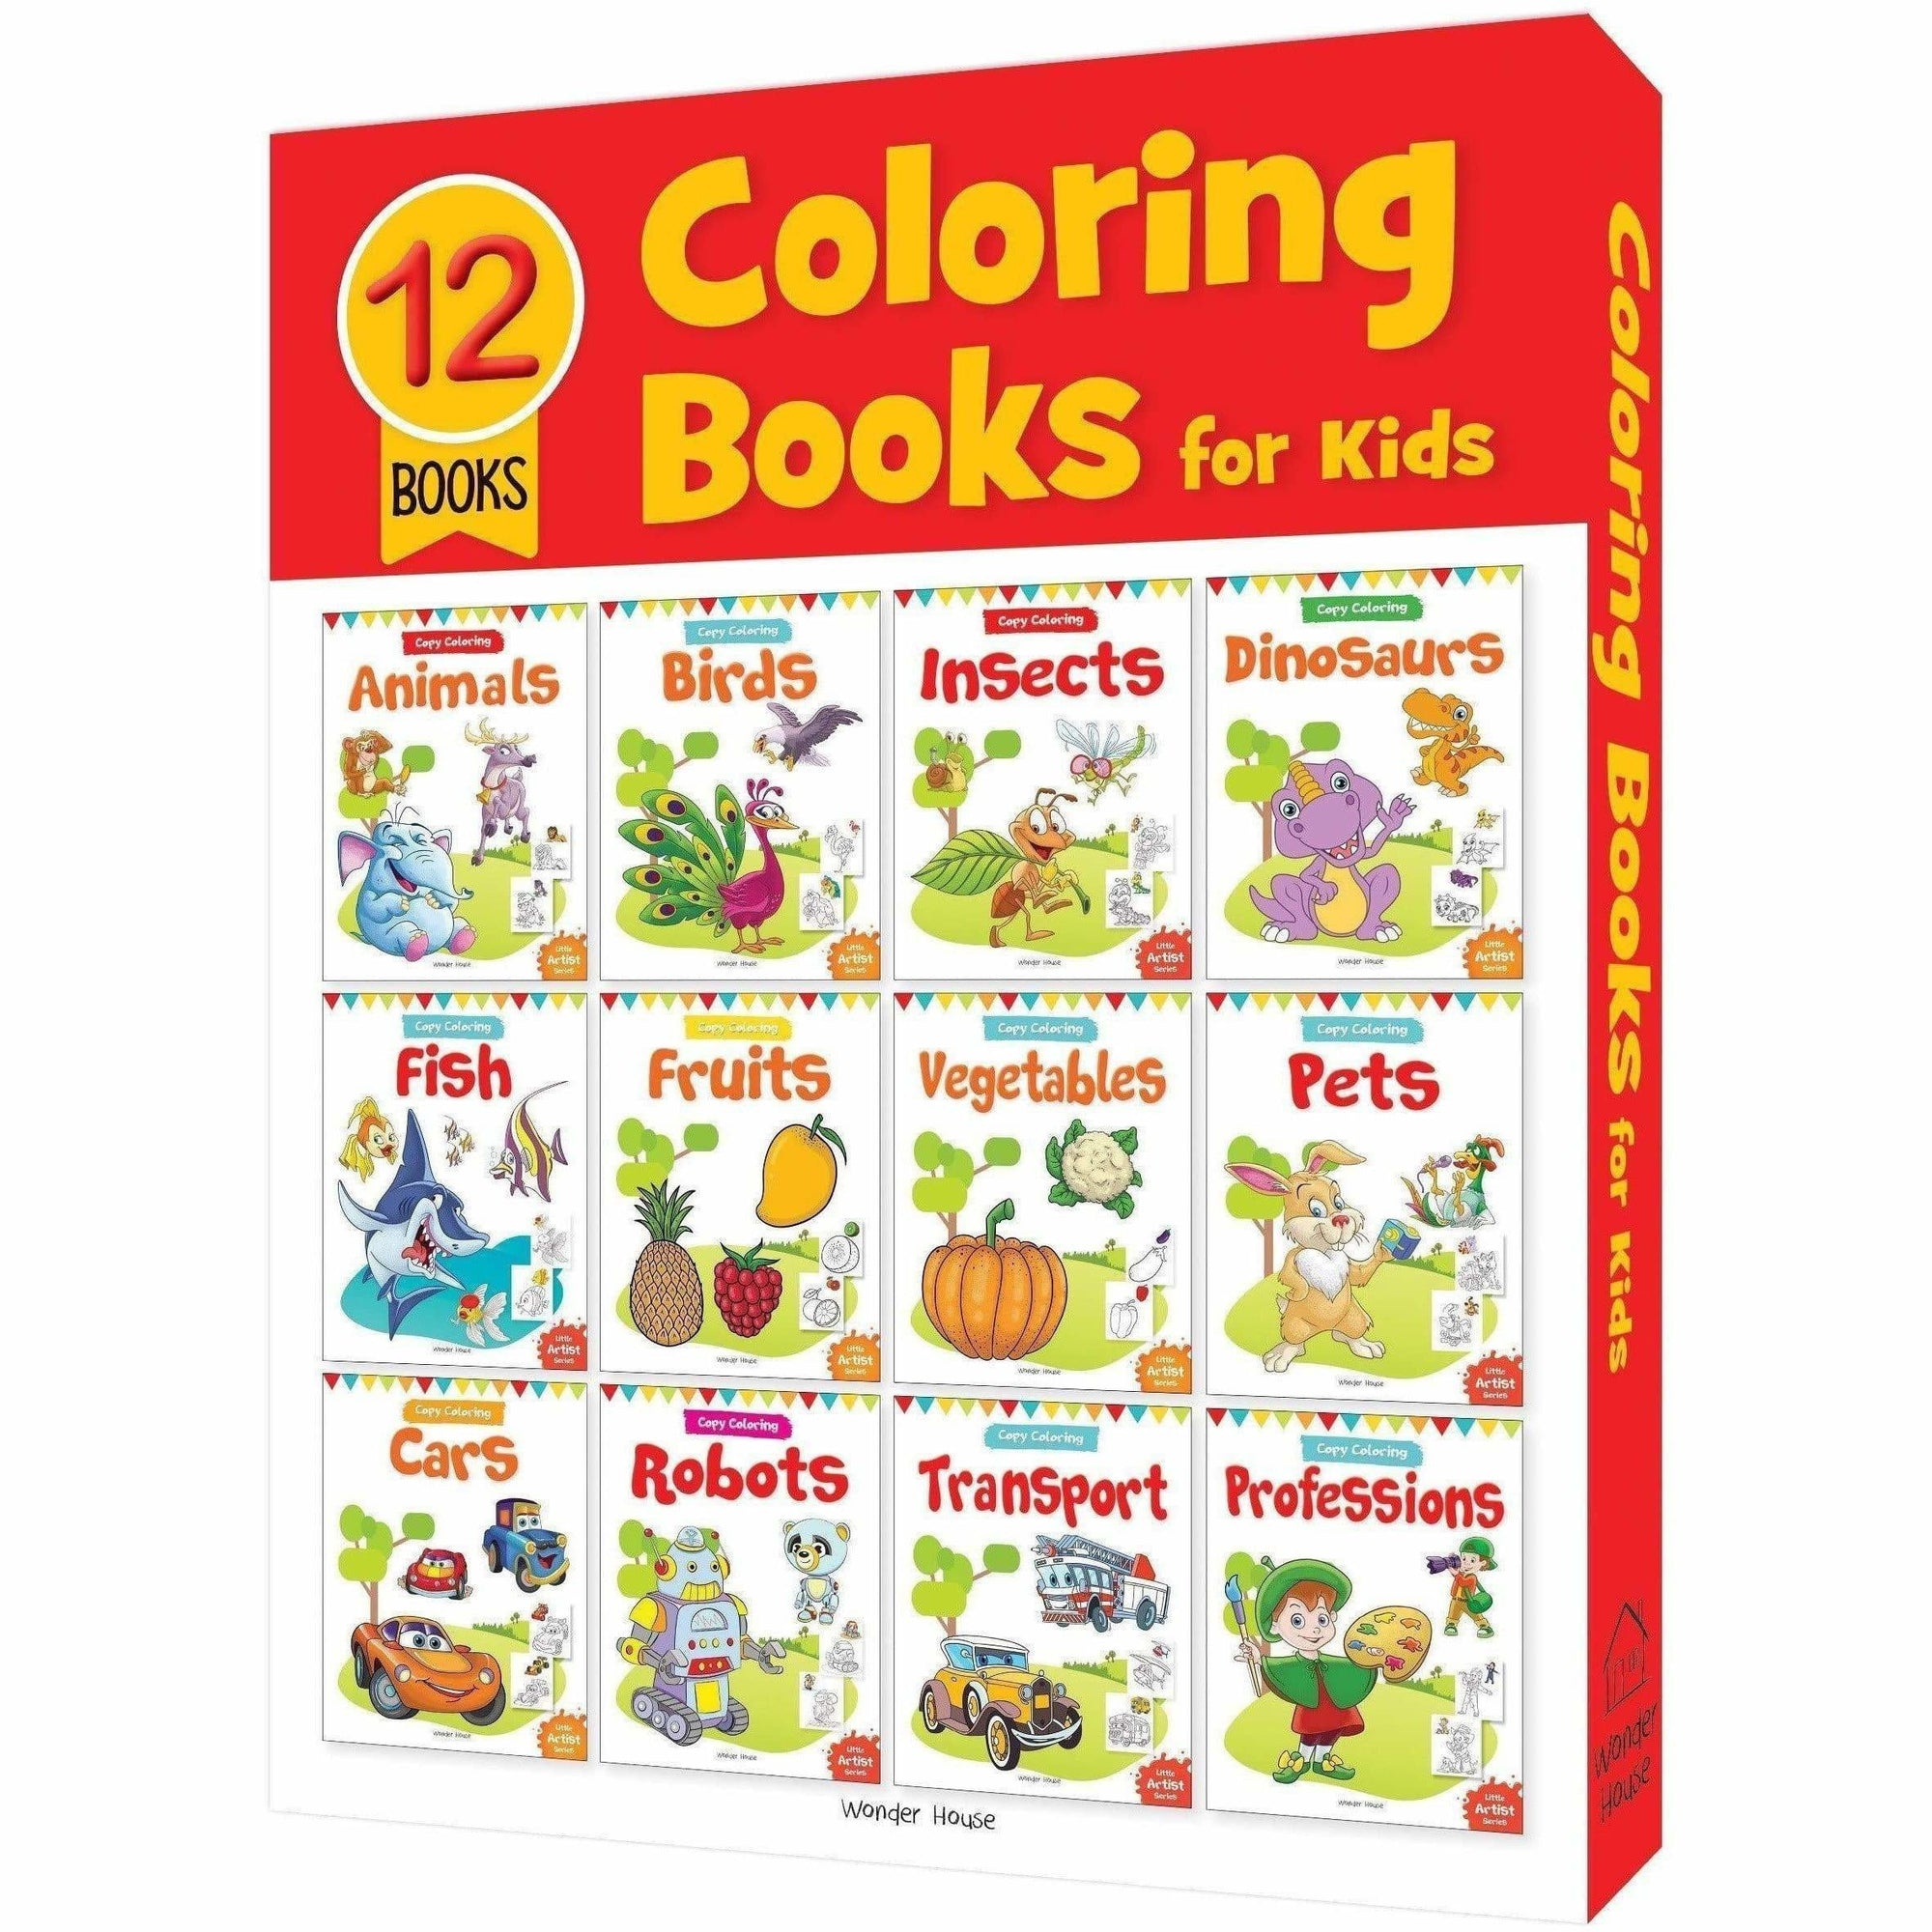 Colouring Books For Kids: A Set of 12 Books